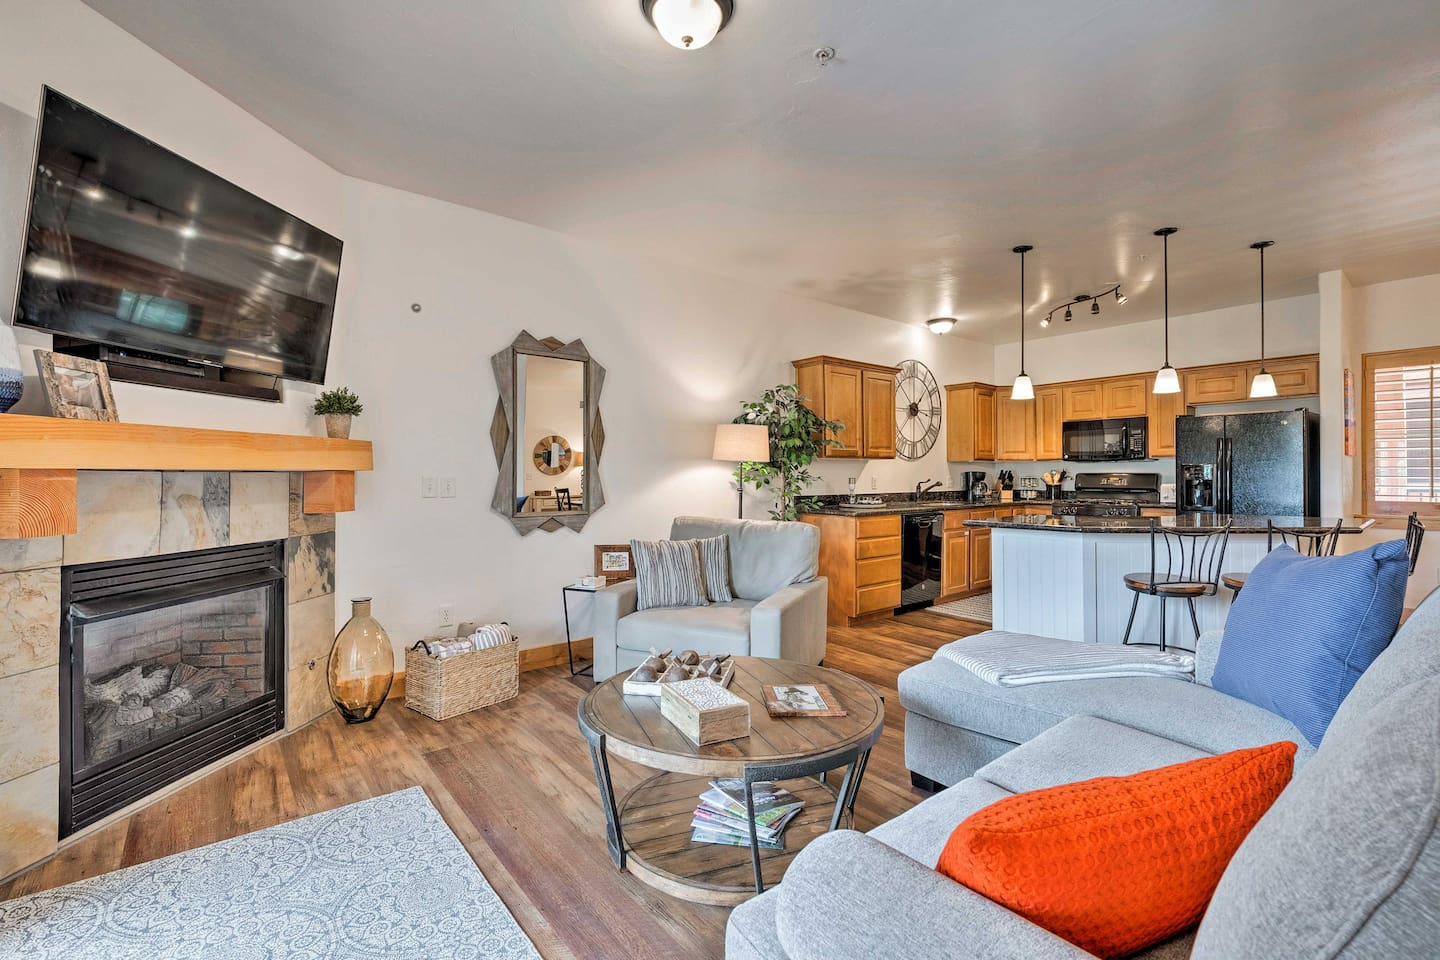 Restore your energy in this lovely vacation rental condo after fun in Park City.